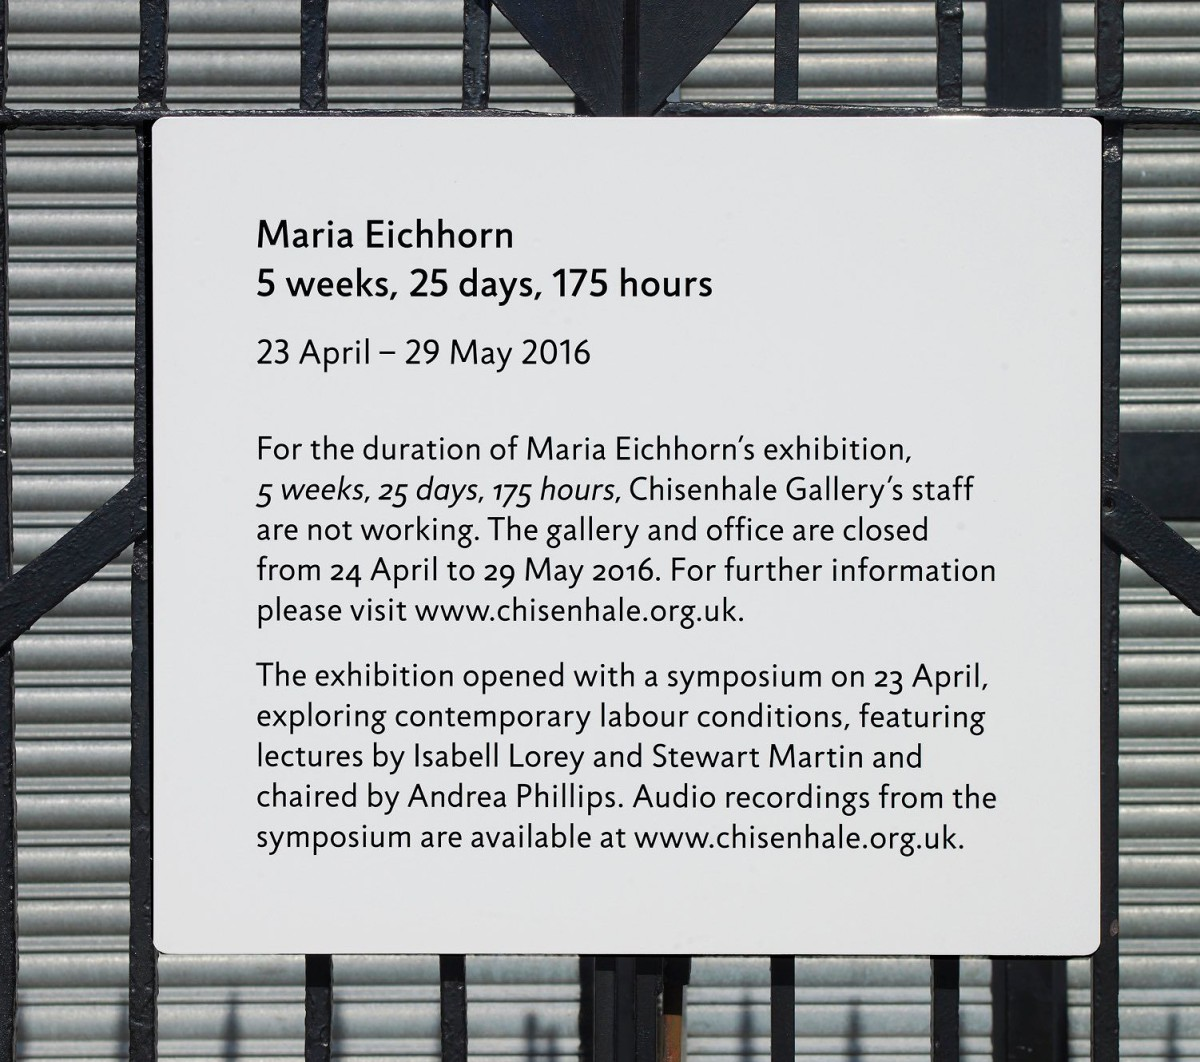 Maria Eichhorn .  5 weeks, 25 days, 175 hours . 2016 (1)